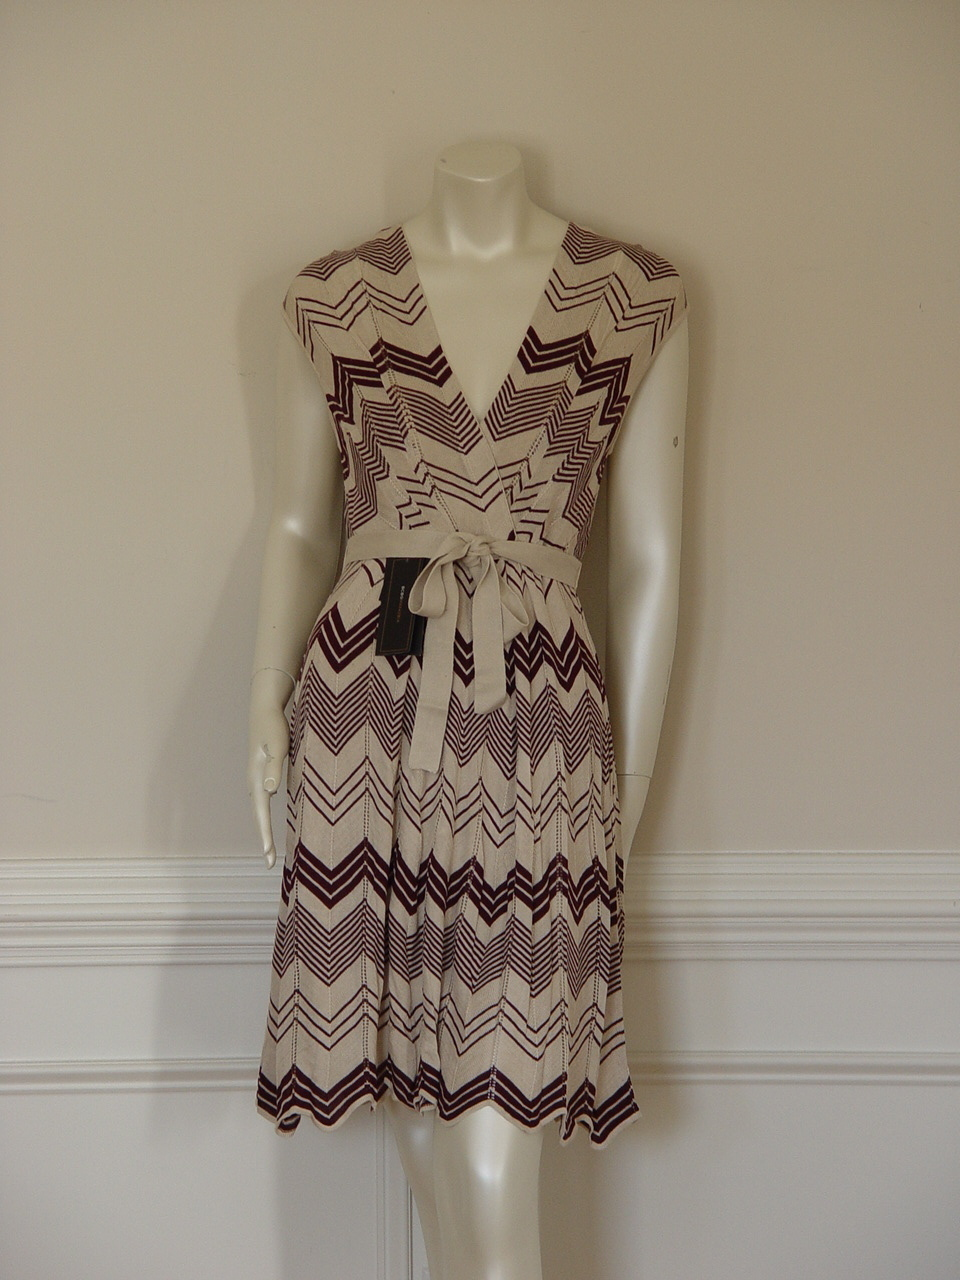 Primary image for BCBG MAX AZRIA BURGUNDY IVORY CHEVRON DRESS - US MEDIUM - 8 - 10